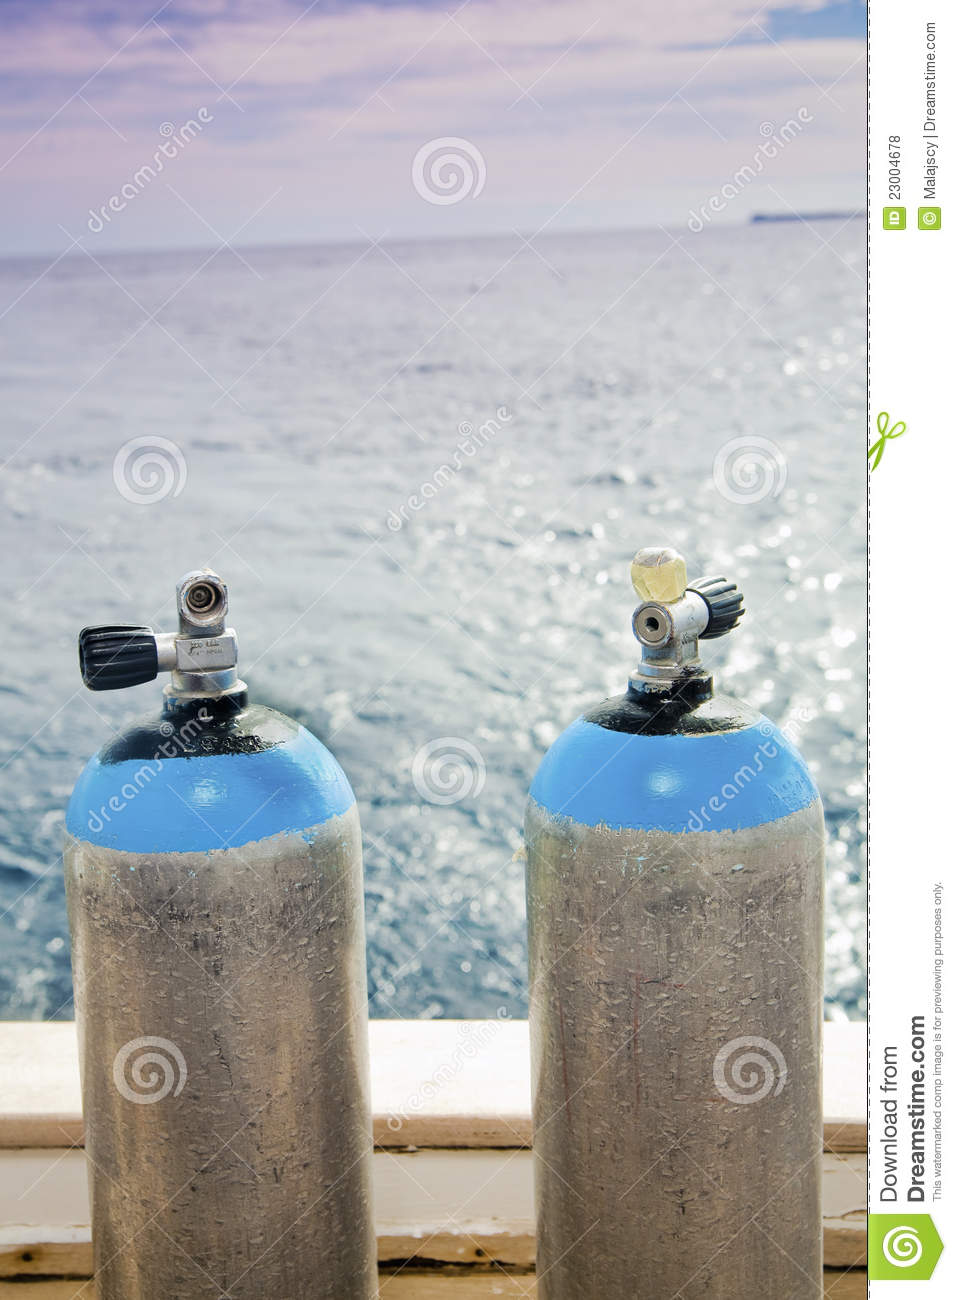 Scuba Diving Tanks Royalty Free Stock Photos   Image  23004678